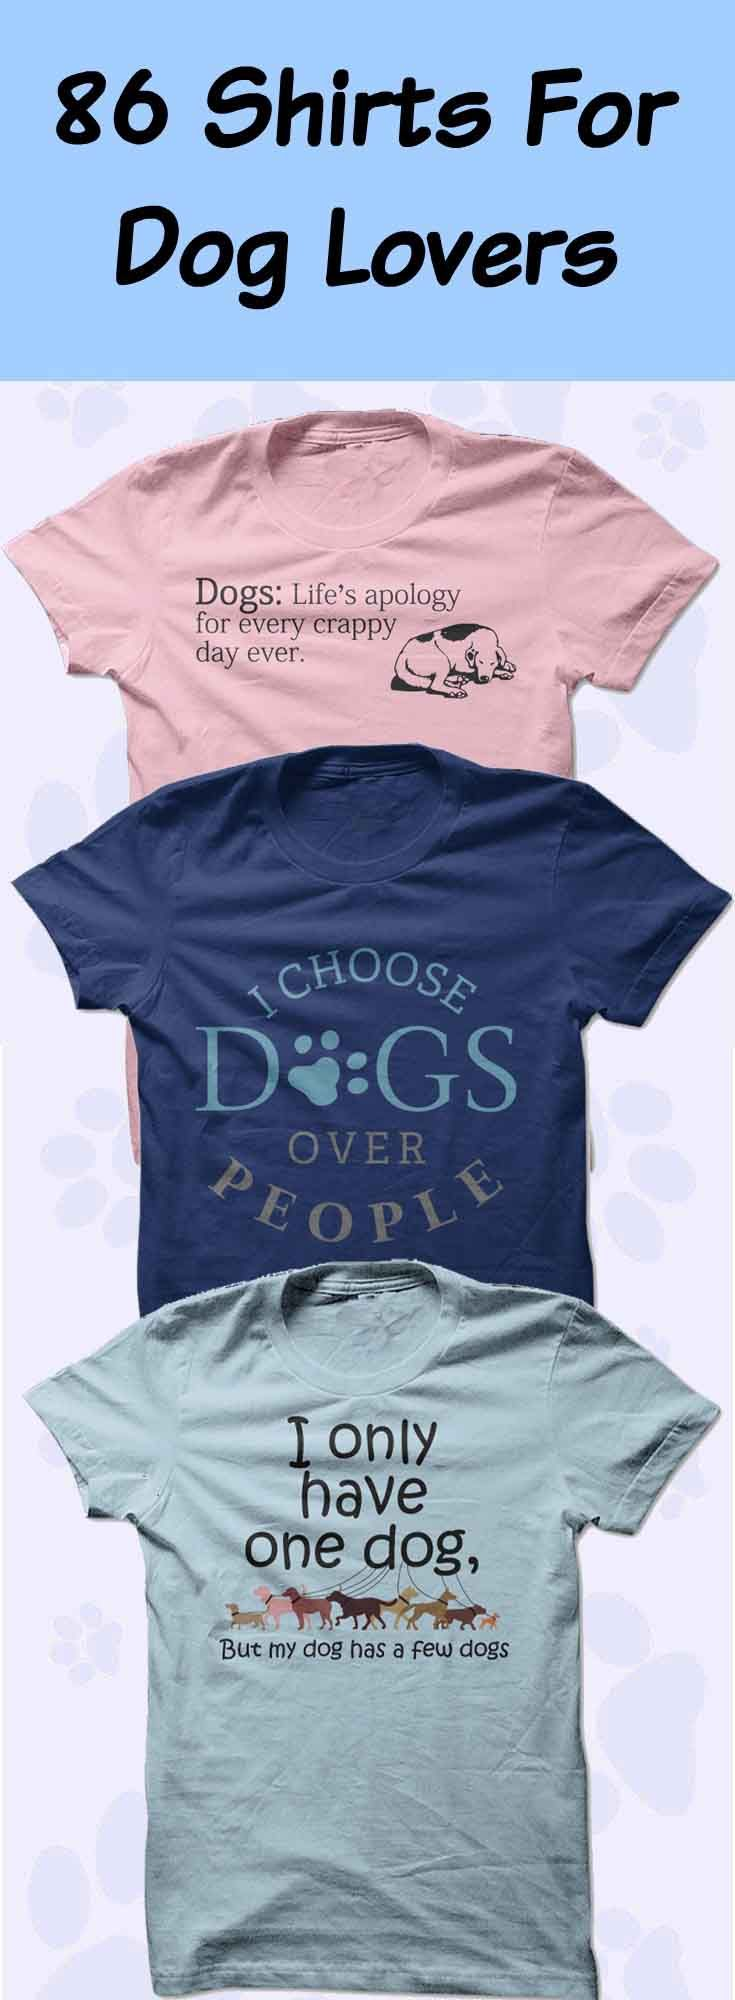 T shirt design qld - 86 Shirts For Dog Lovers Click To See Here Https